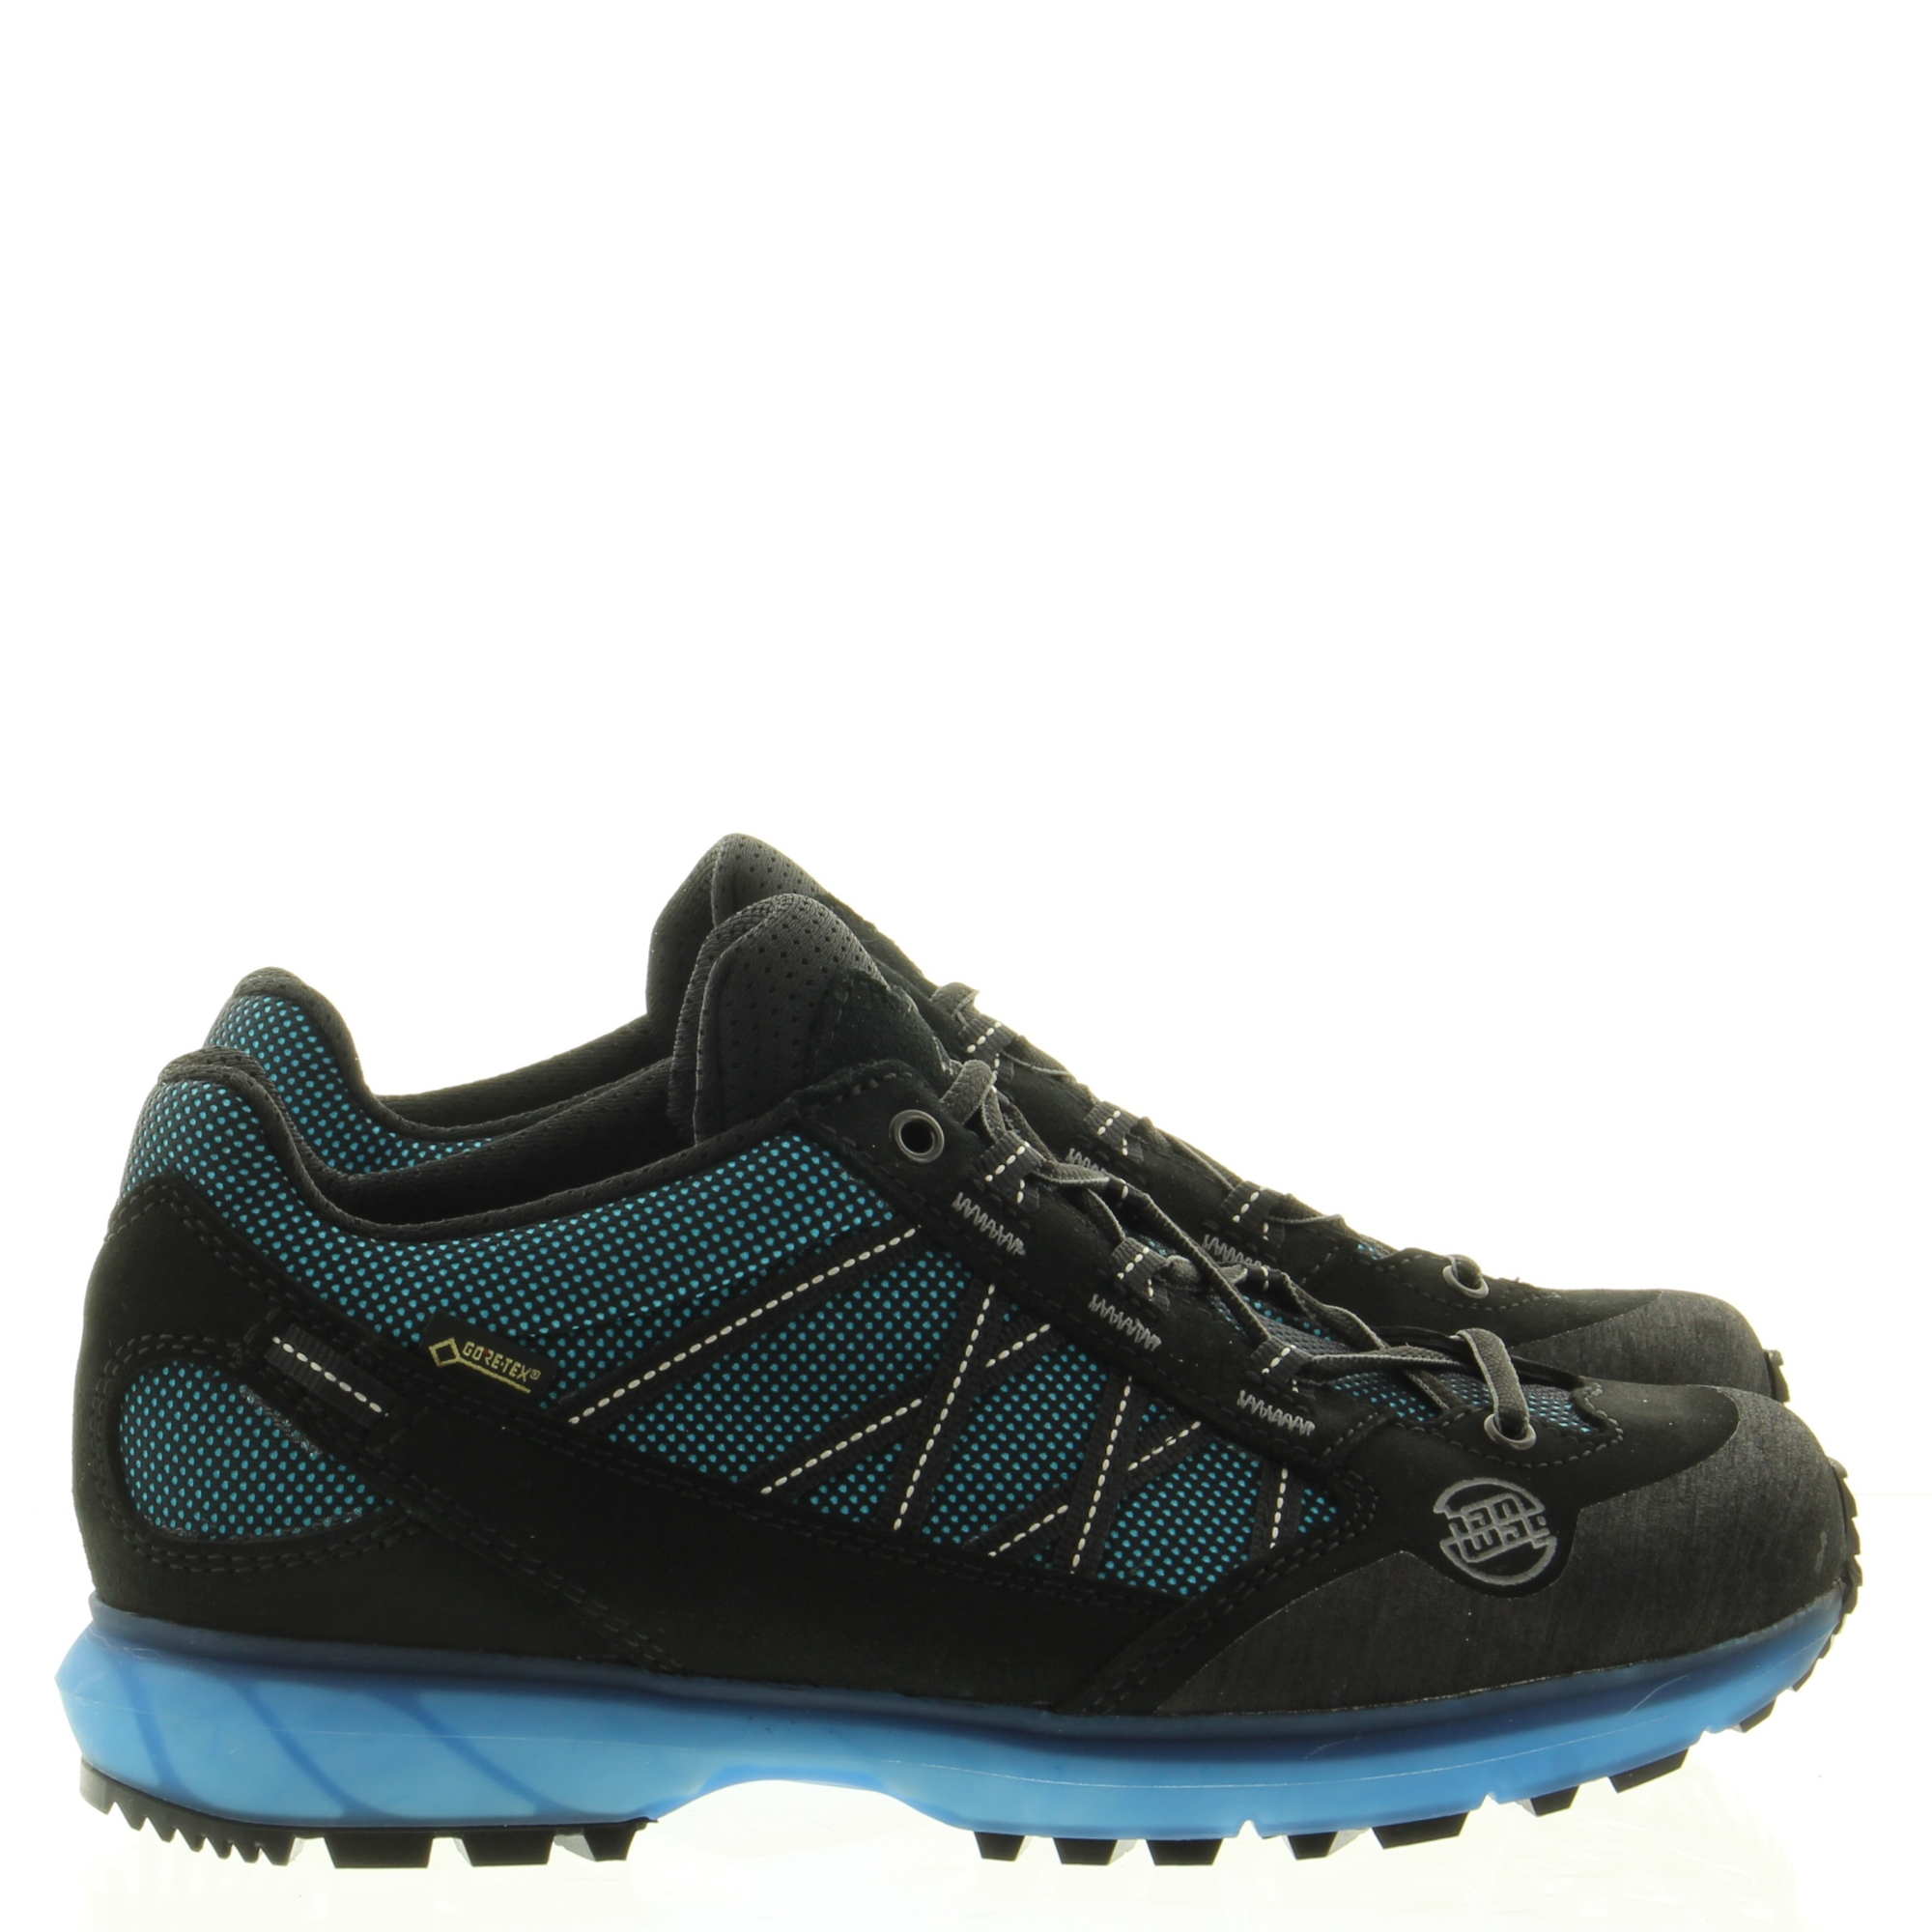 Hanwag 201401 Belorado II Lady GTX 012490 Black Ocean